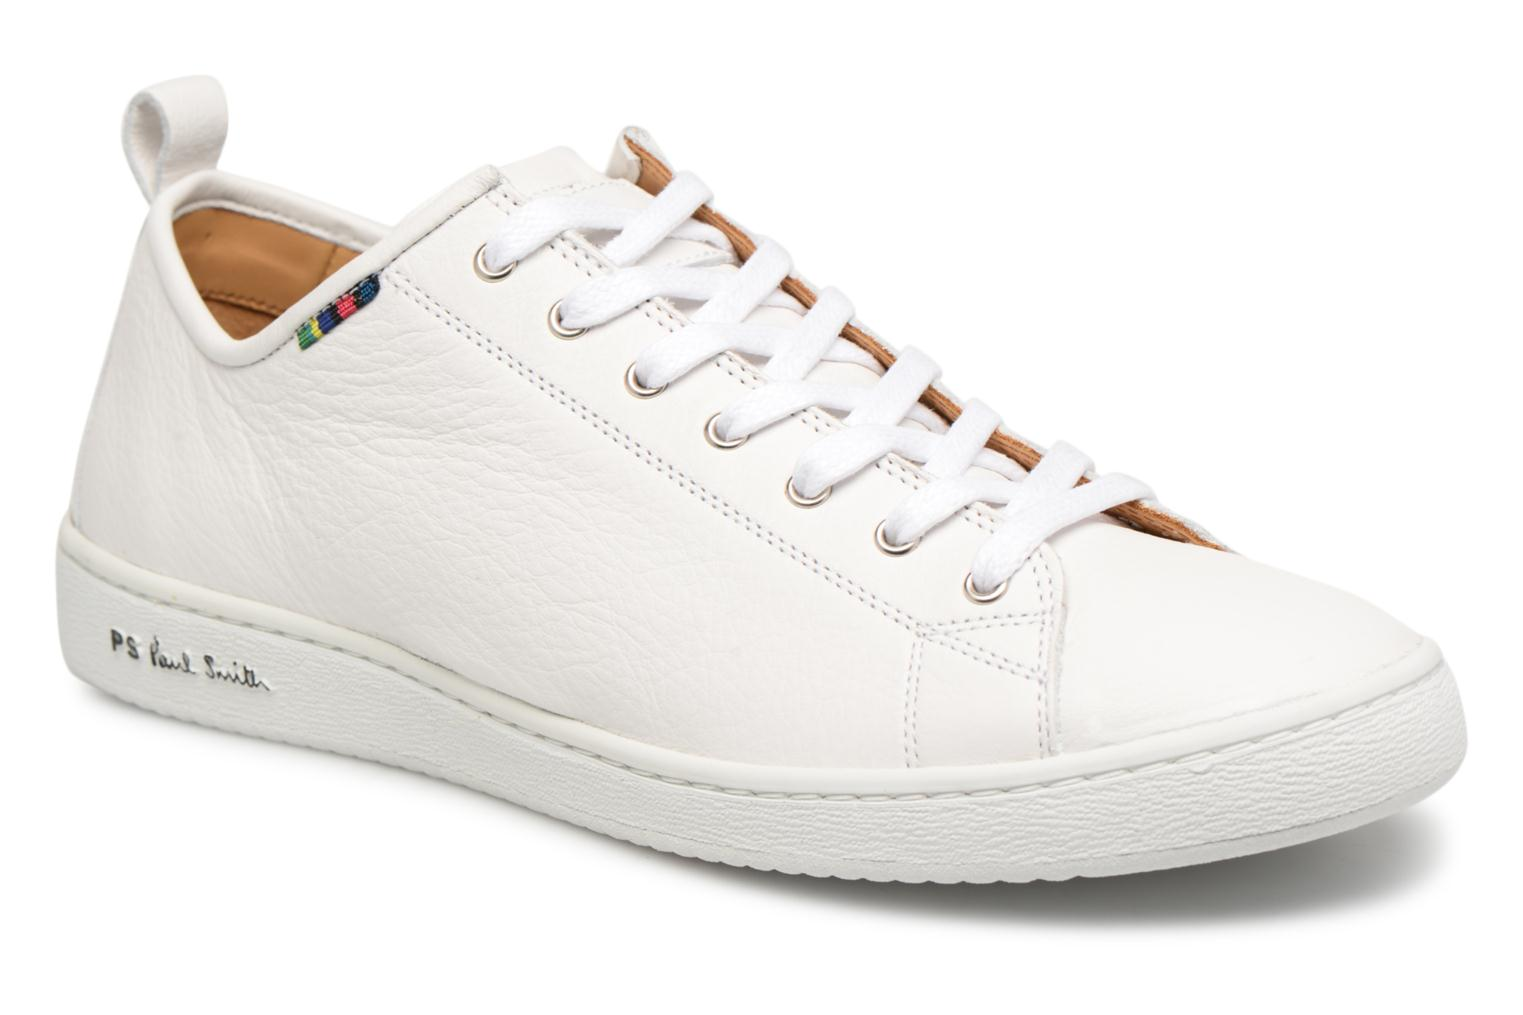 Sneakers PS Paul Smith Wit